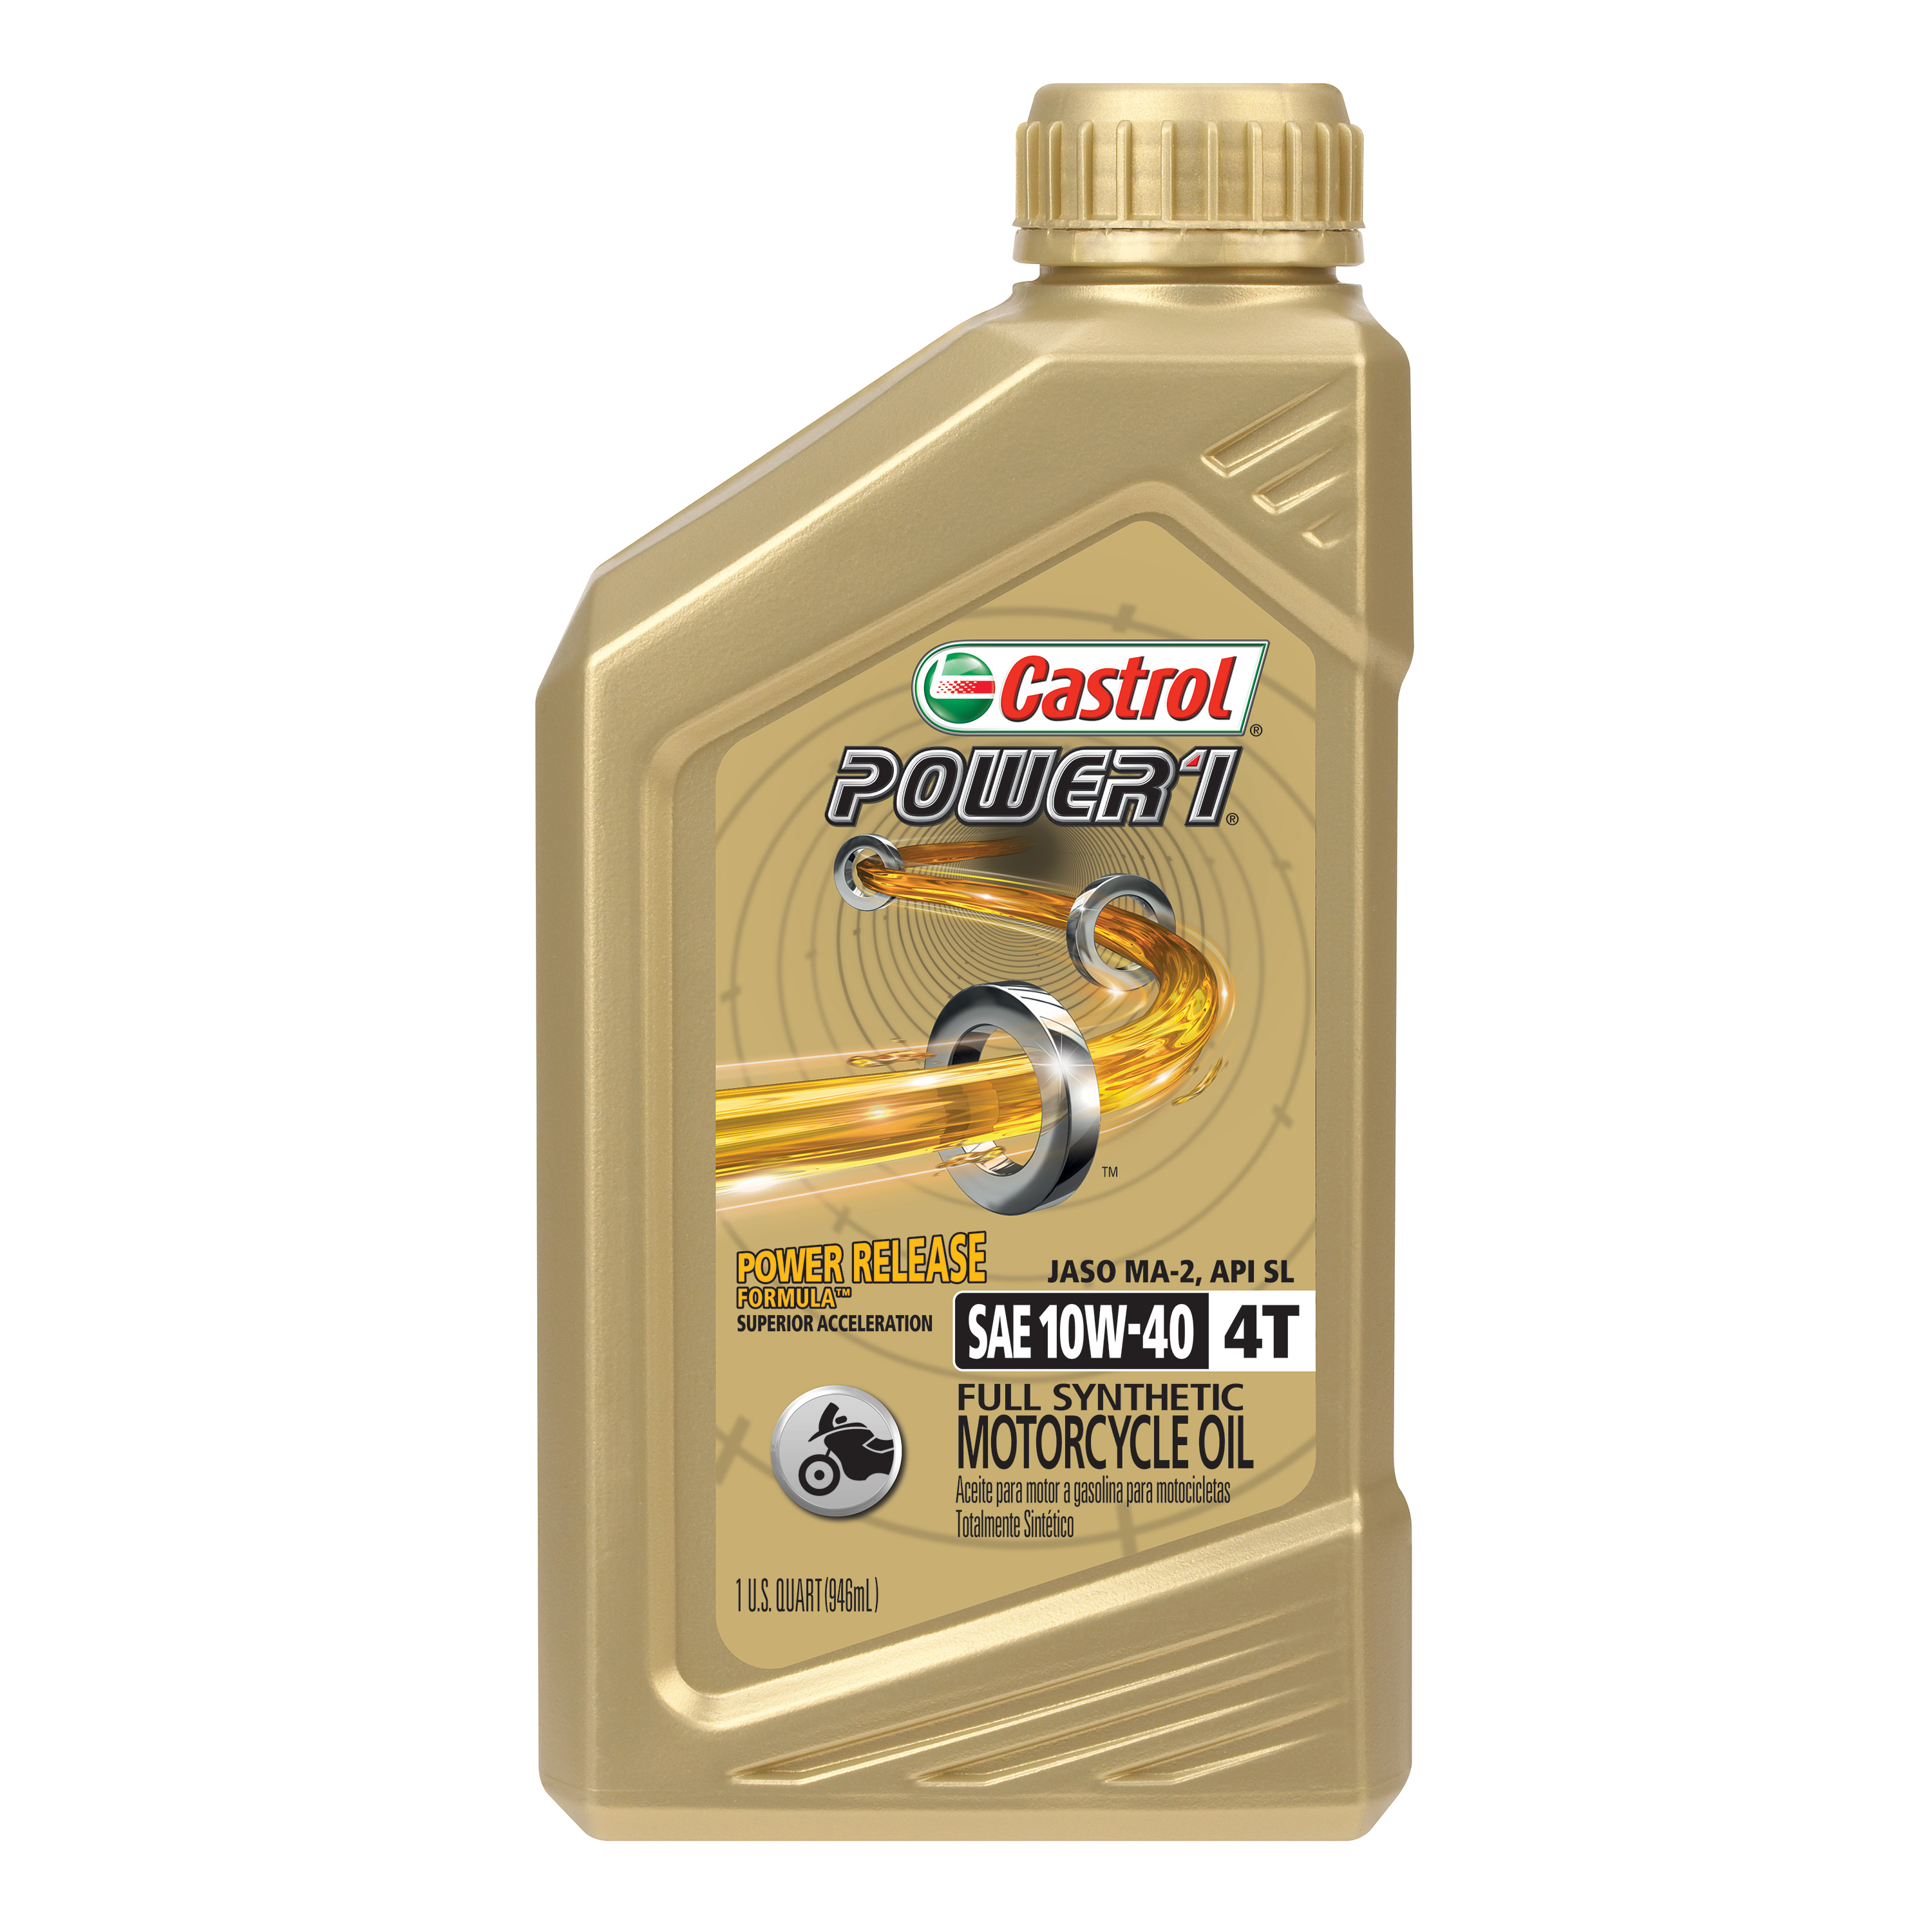 Castrol Power1 4T 10W-40 Full Synthetic Motorcycle Oil, 1 Qt Bottle